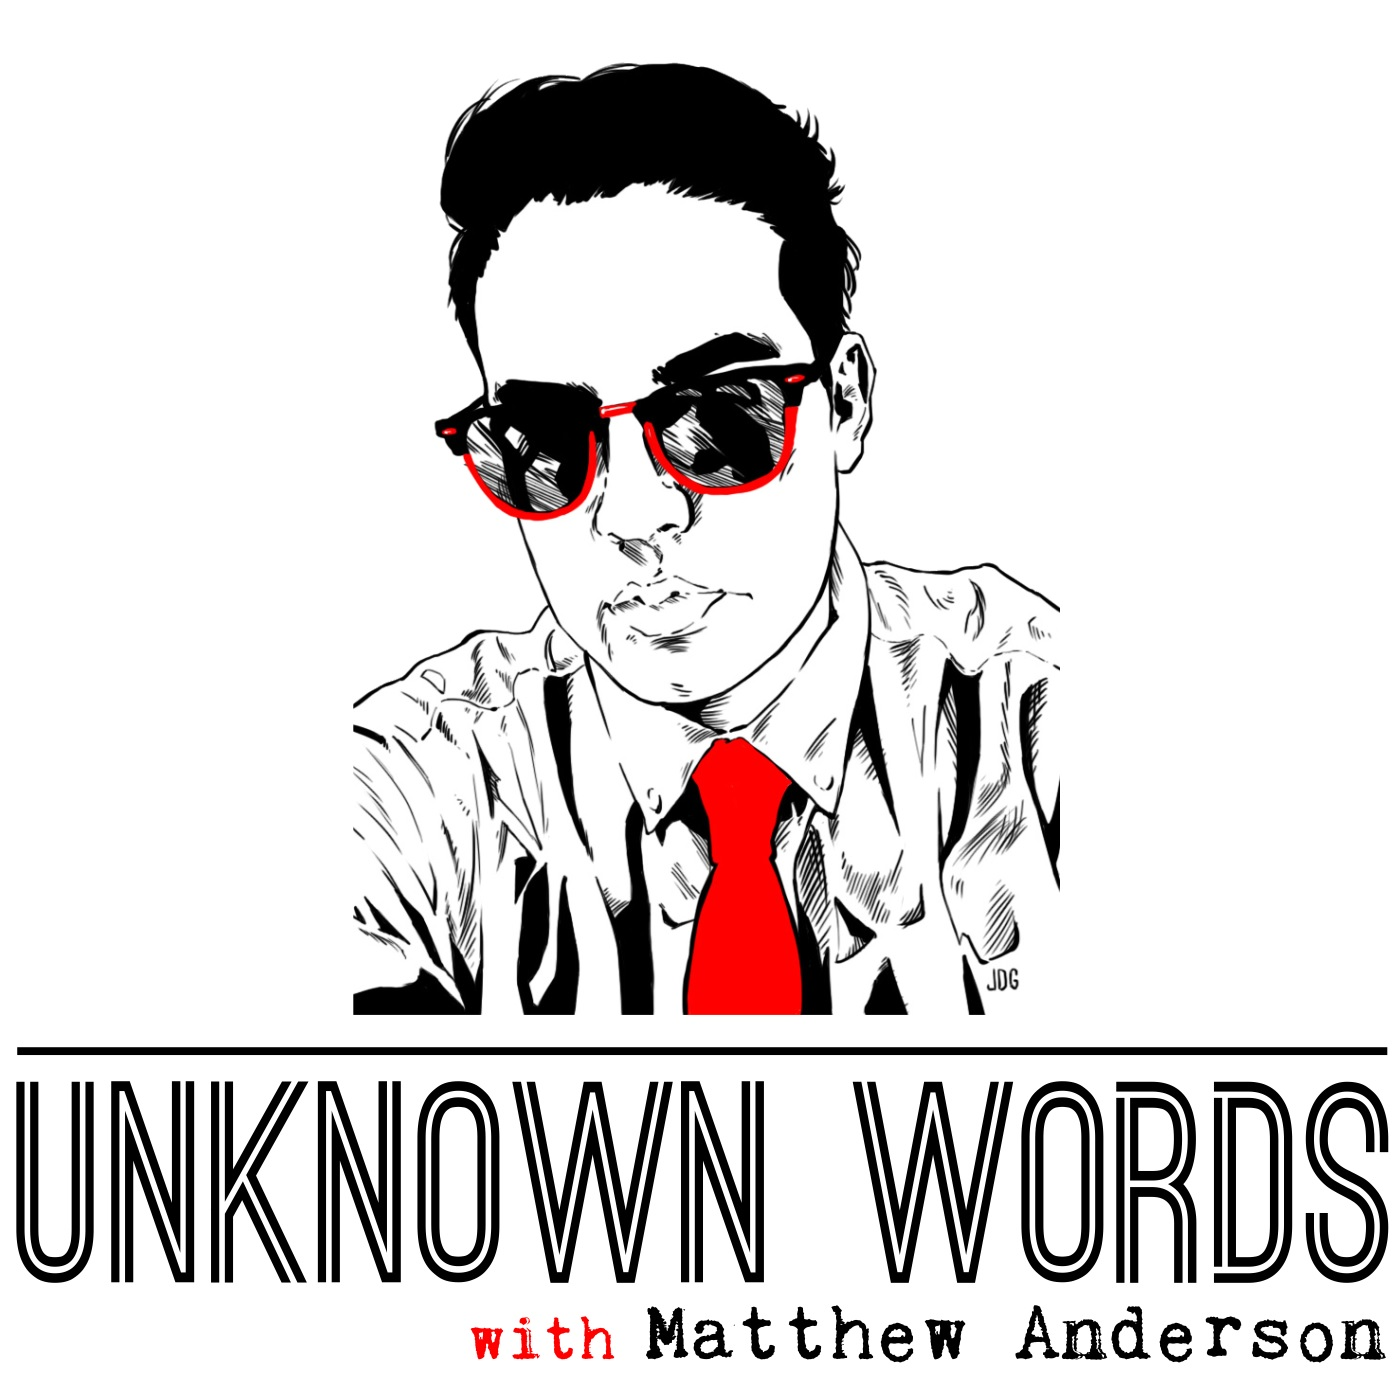 Unknown Words with Matthew Anderson